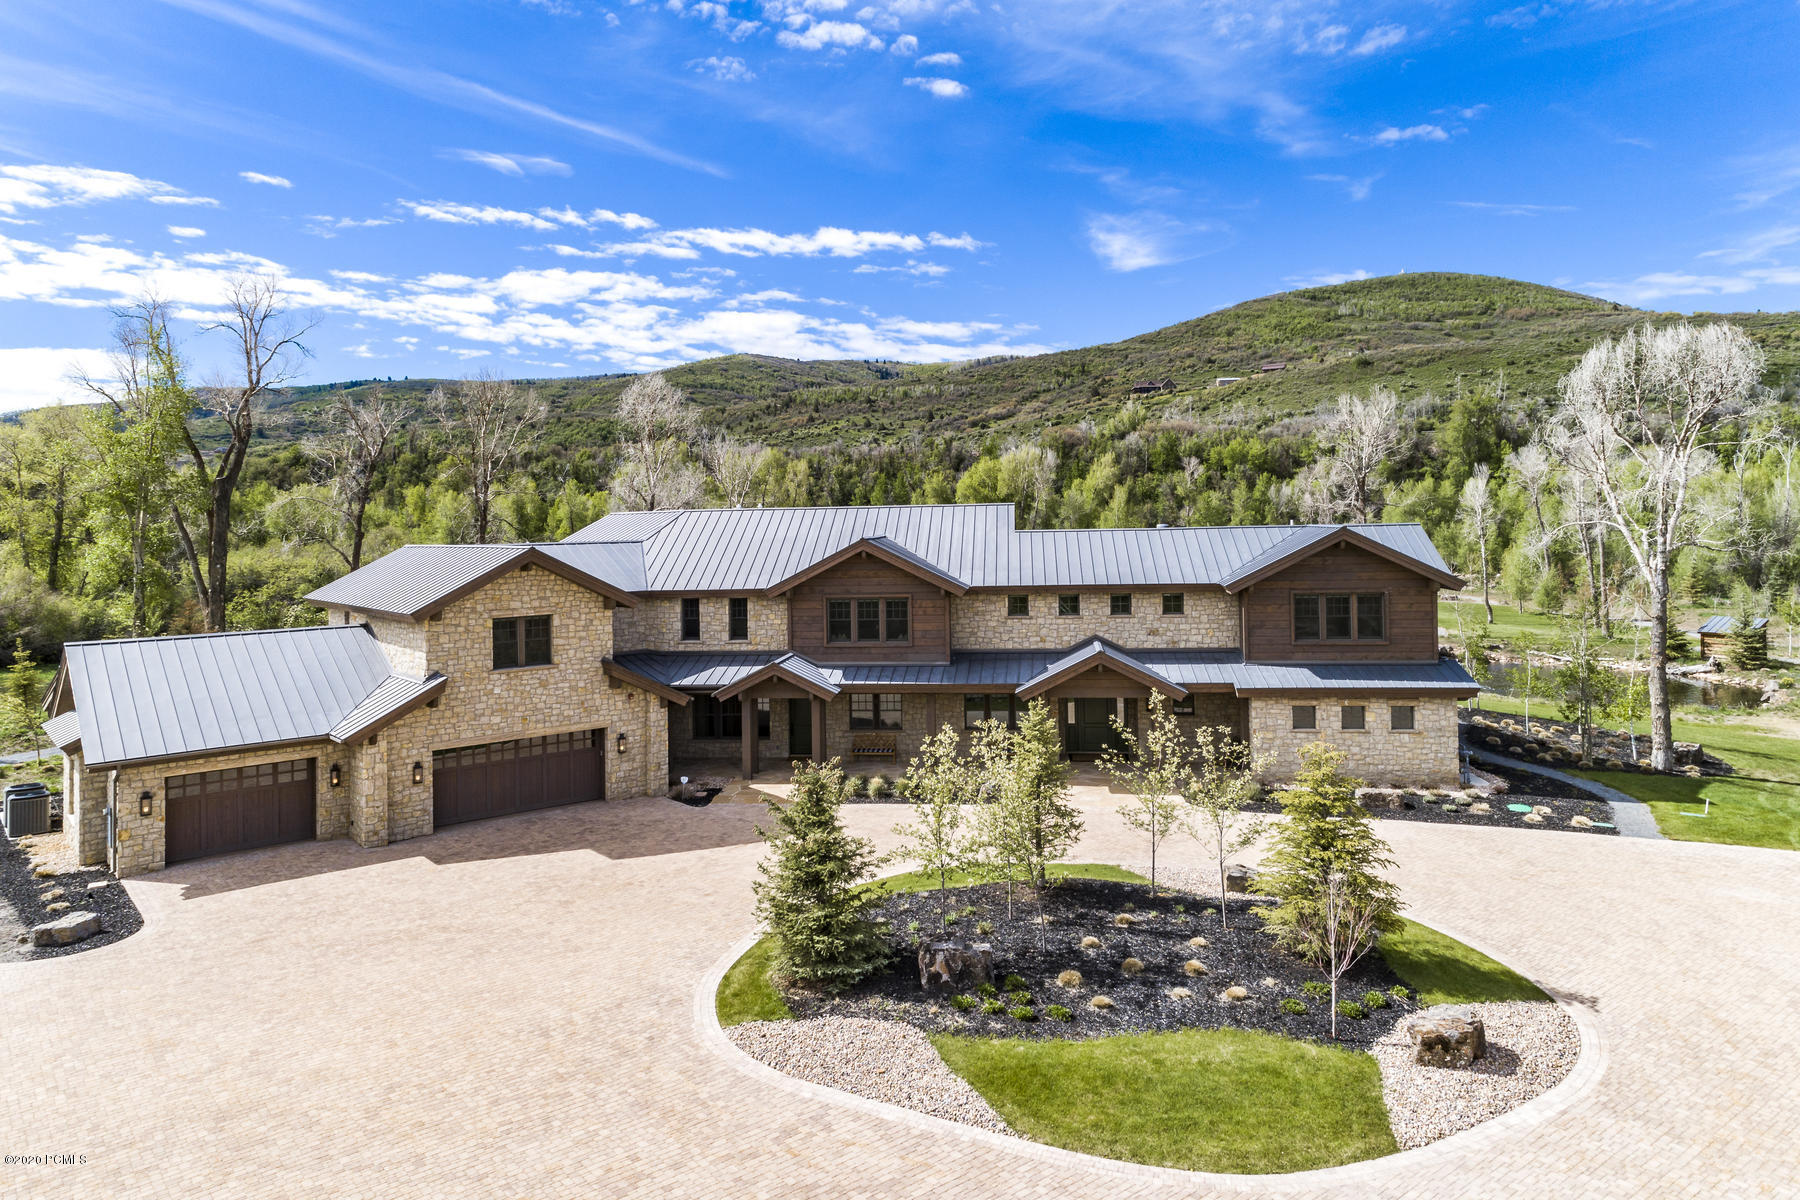 2202 State Highway 35, Kamas, Utah 84036, 7 Bedrooms Bedrooms, ,10 BathroomsBathrooms,Single Family,For Sale,State Highway 35,20190109112430415765000000